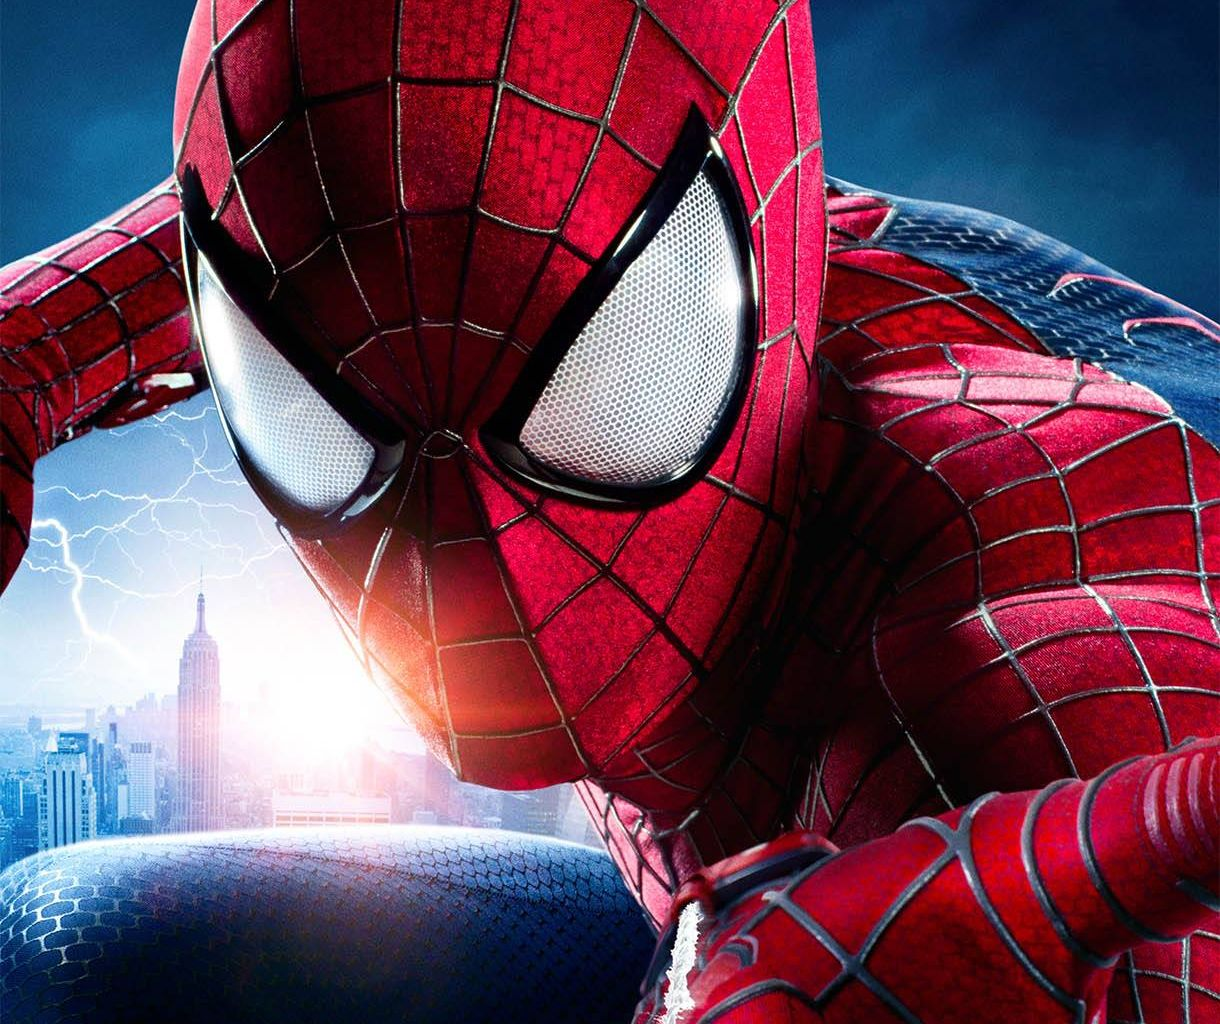 Teaser for the Final The Amazing Spider-Man 2 Trailer ...